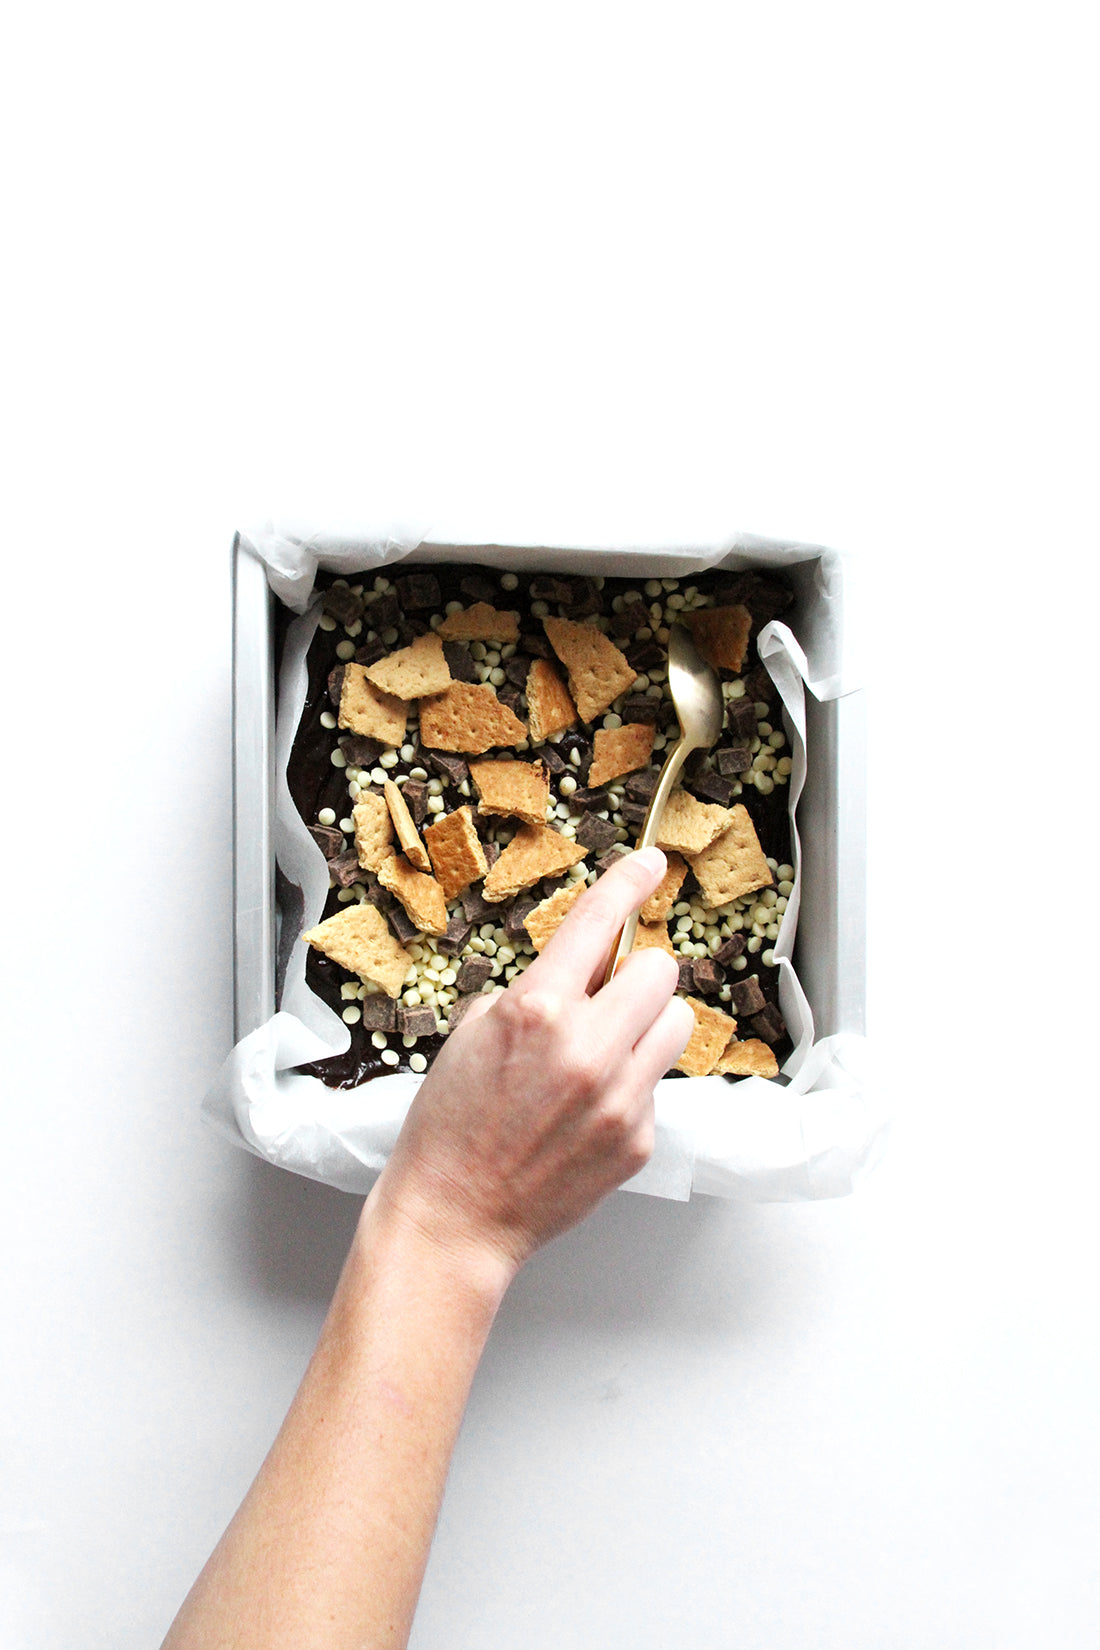 Image of Miss Jones Baking Co Campfire Smores Brownies in baking pan being topped with graham crackers